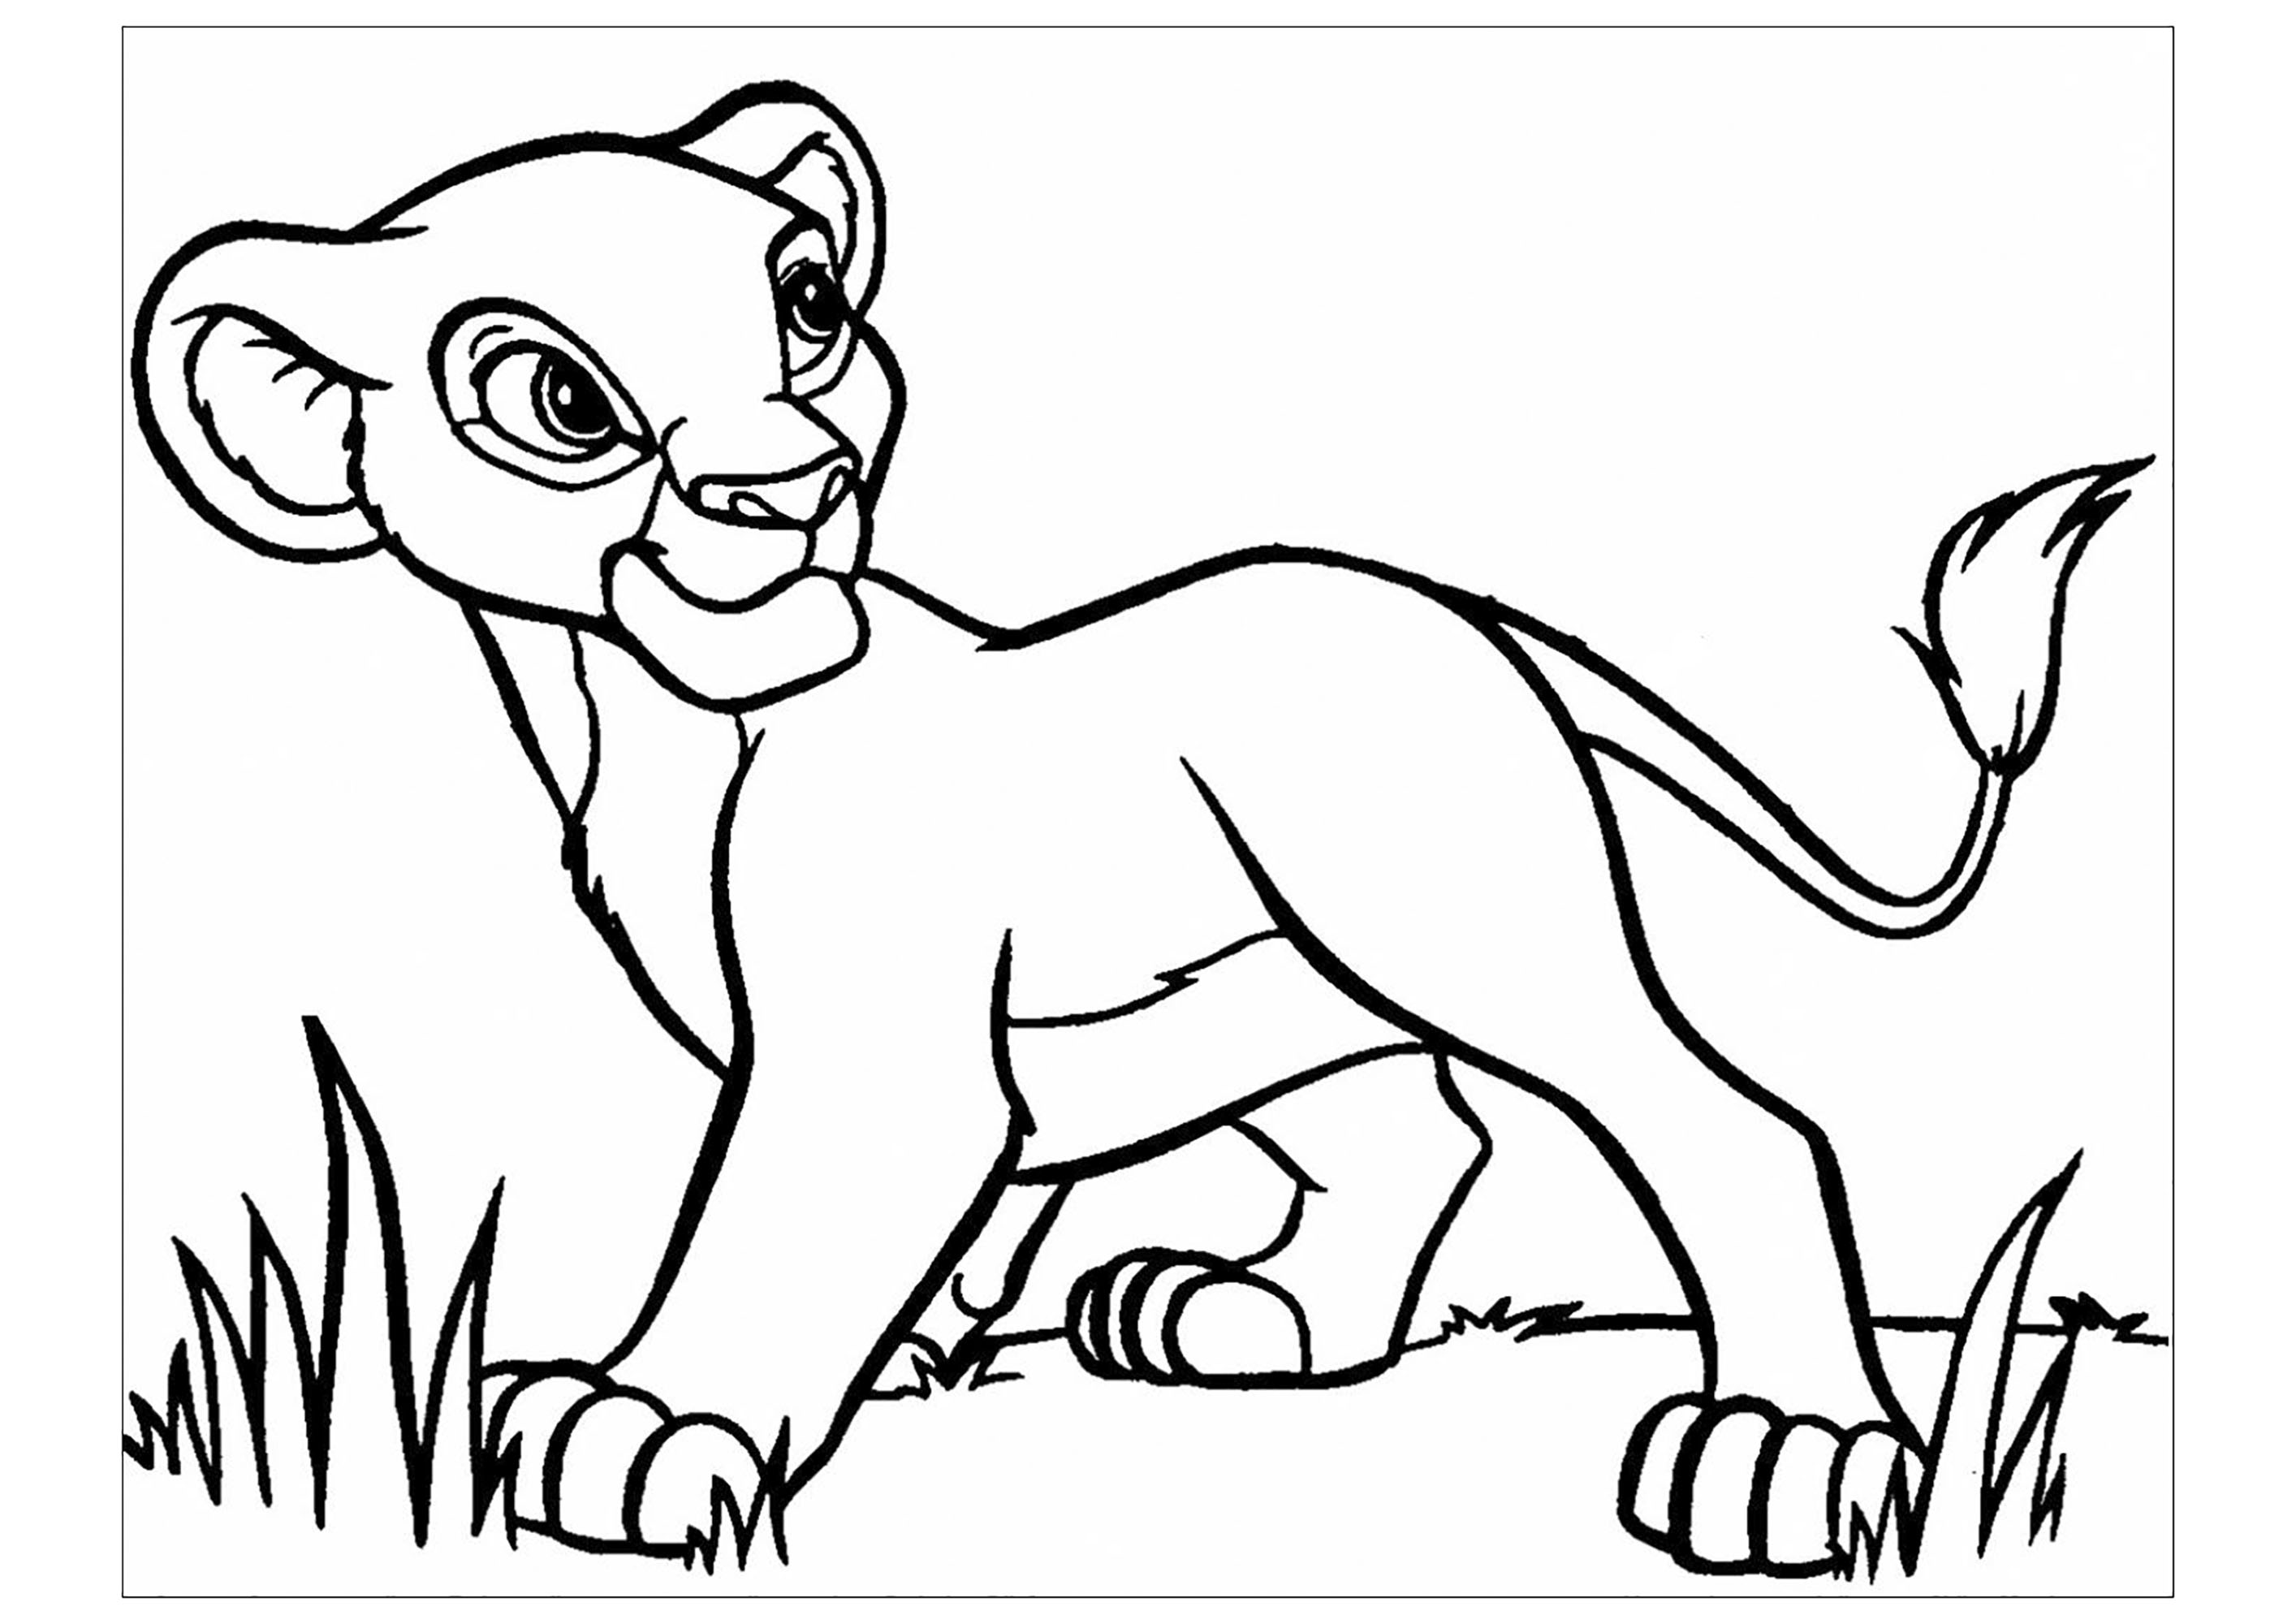 lion king easy coloring pages the lion king coloring pages download and print the lion easy king coloring lion pages